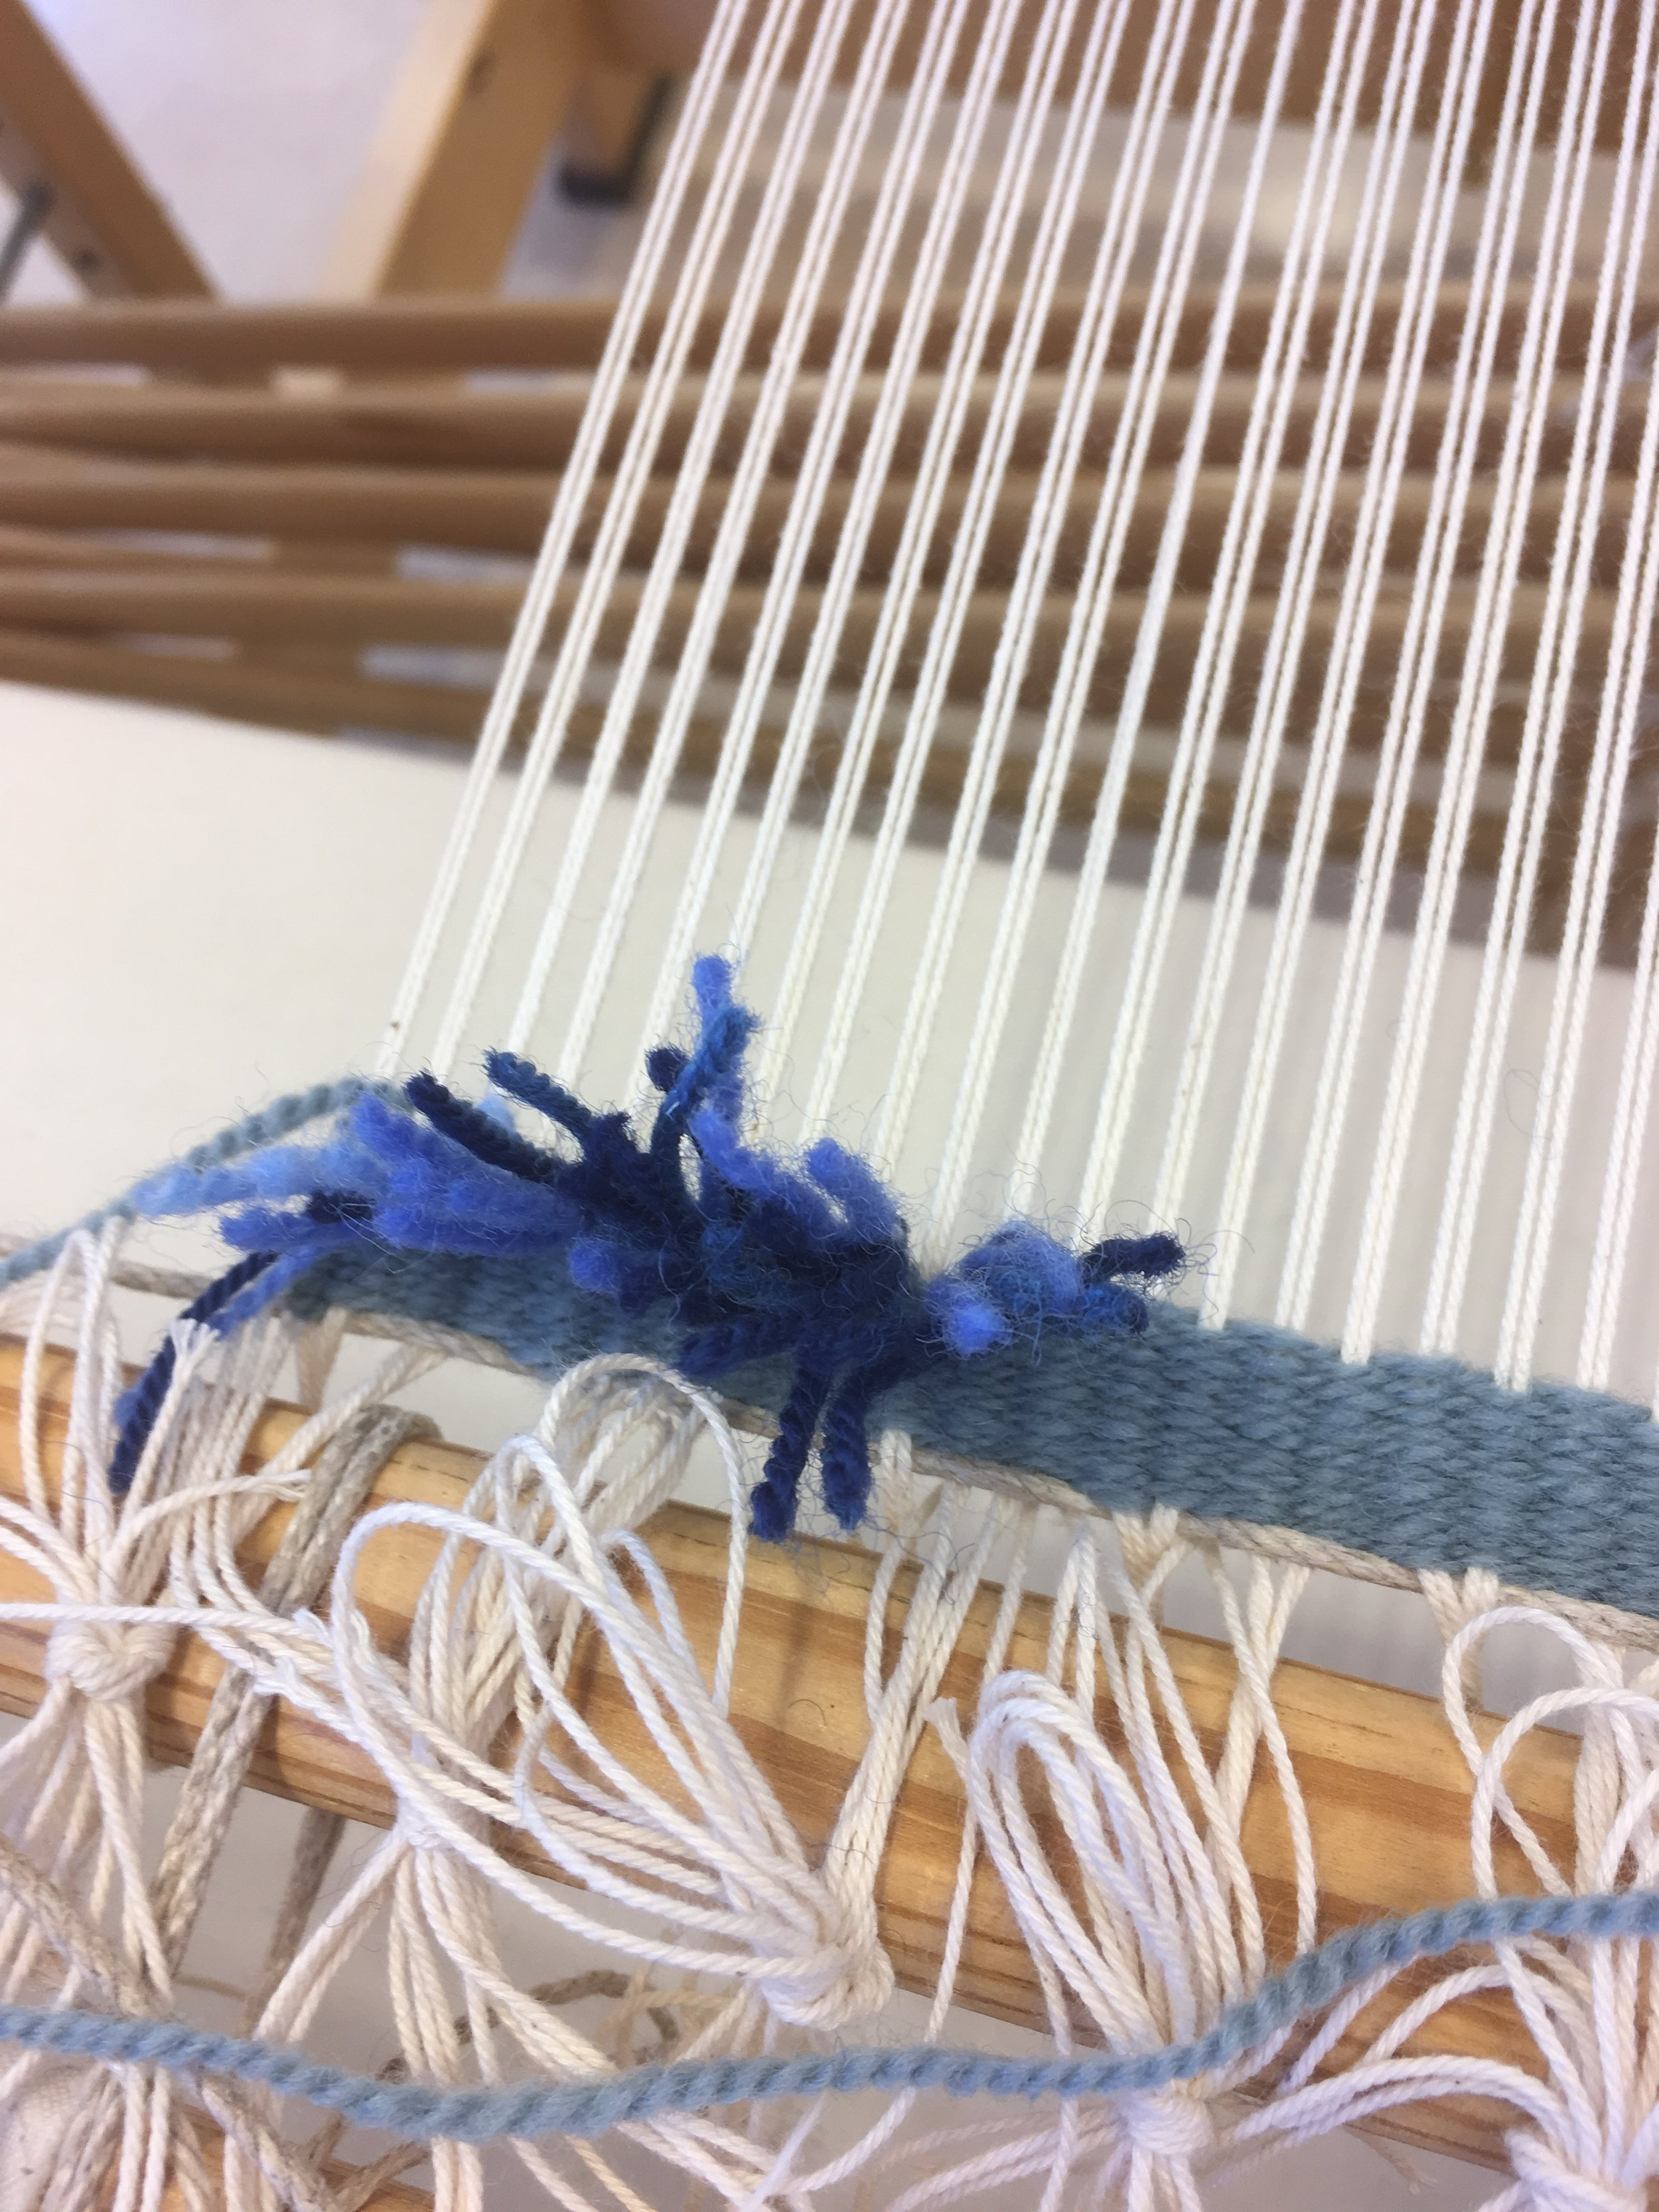 """First knots on the loom for the construction of """"Revisiting the Past"""" (Old Bonfire)"""" tufted tapestry, aka ryijy."""